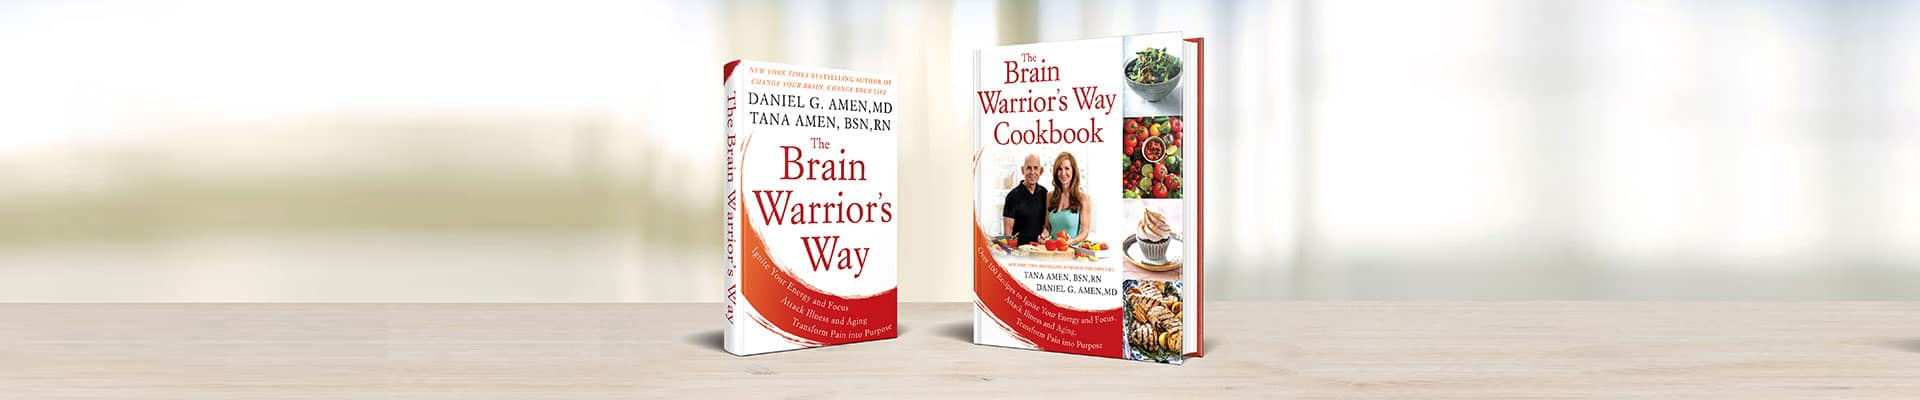 The Brain Warrior's Way Book and Cookbook